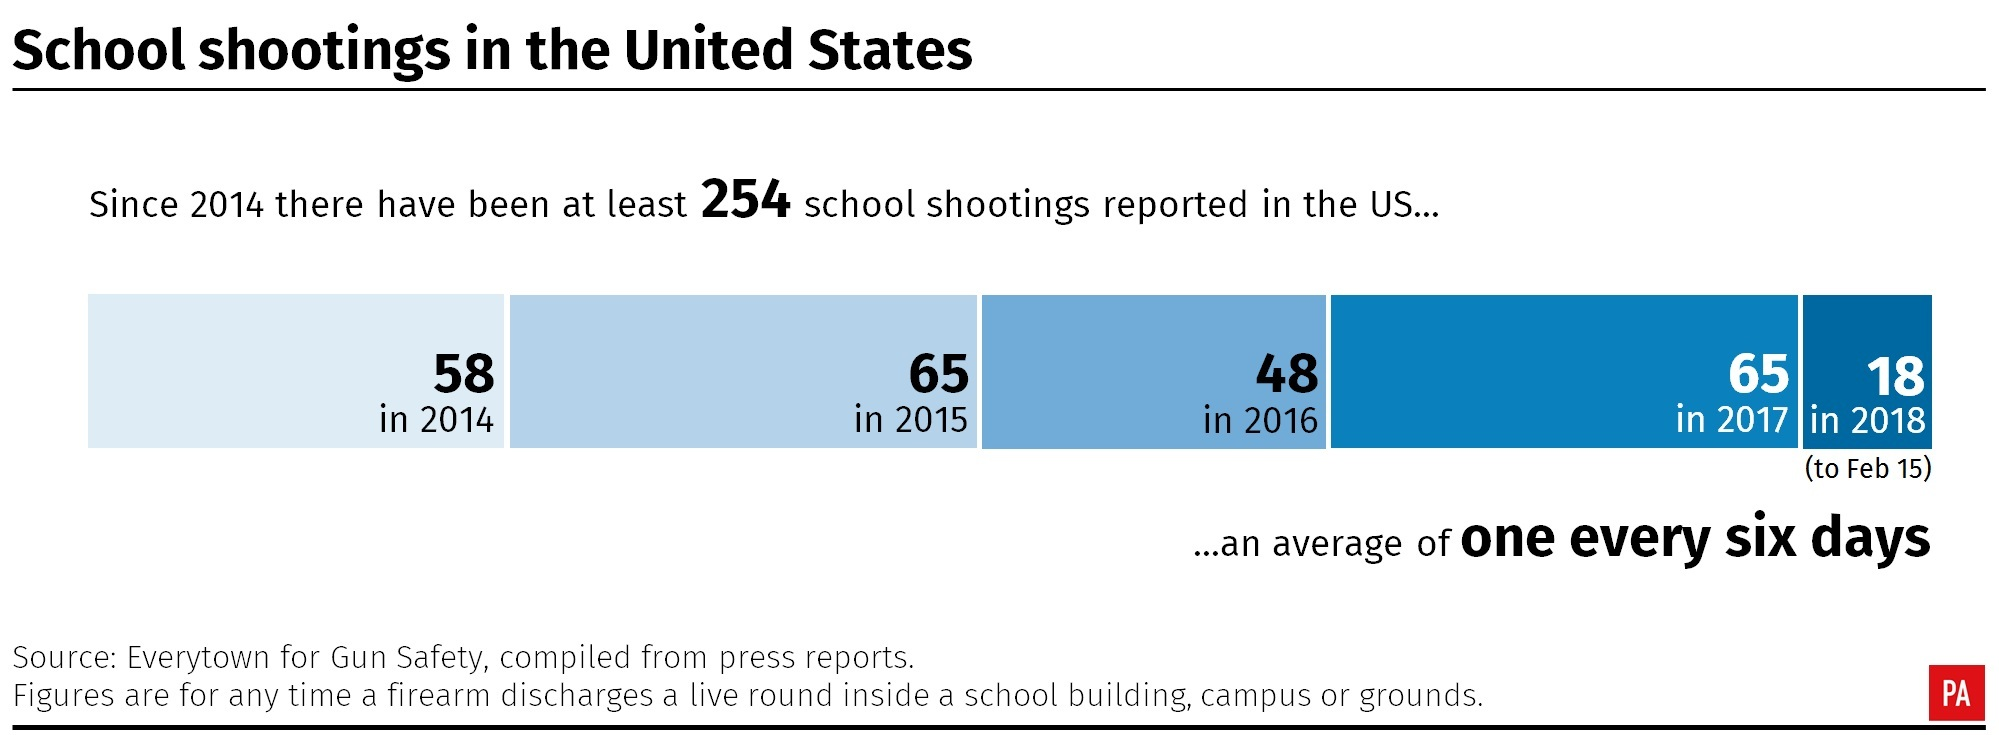 School shootings in the United States, 2014-date